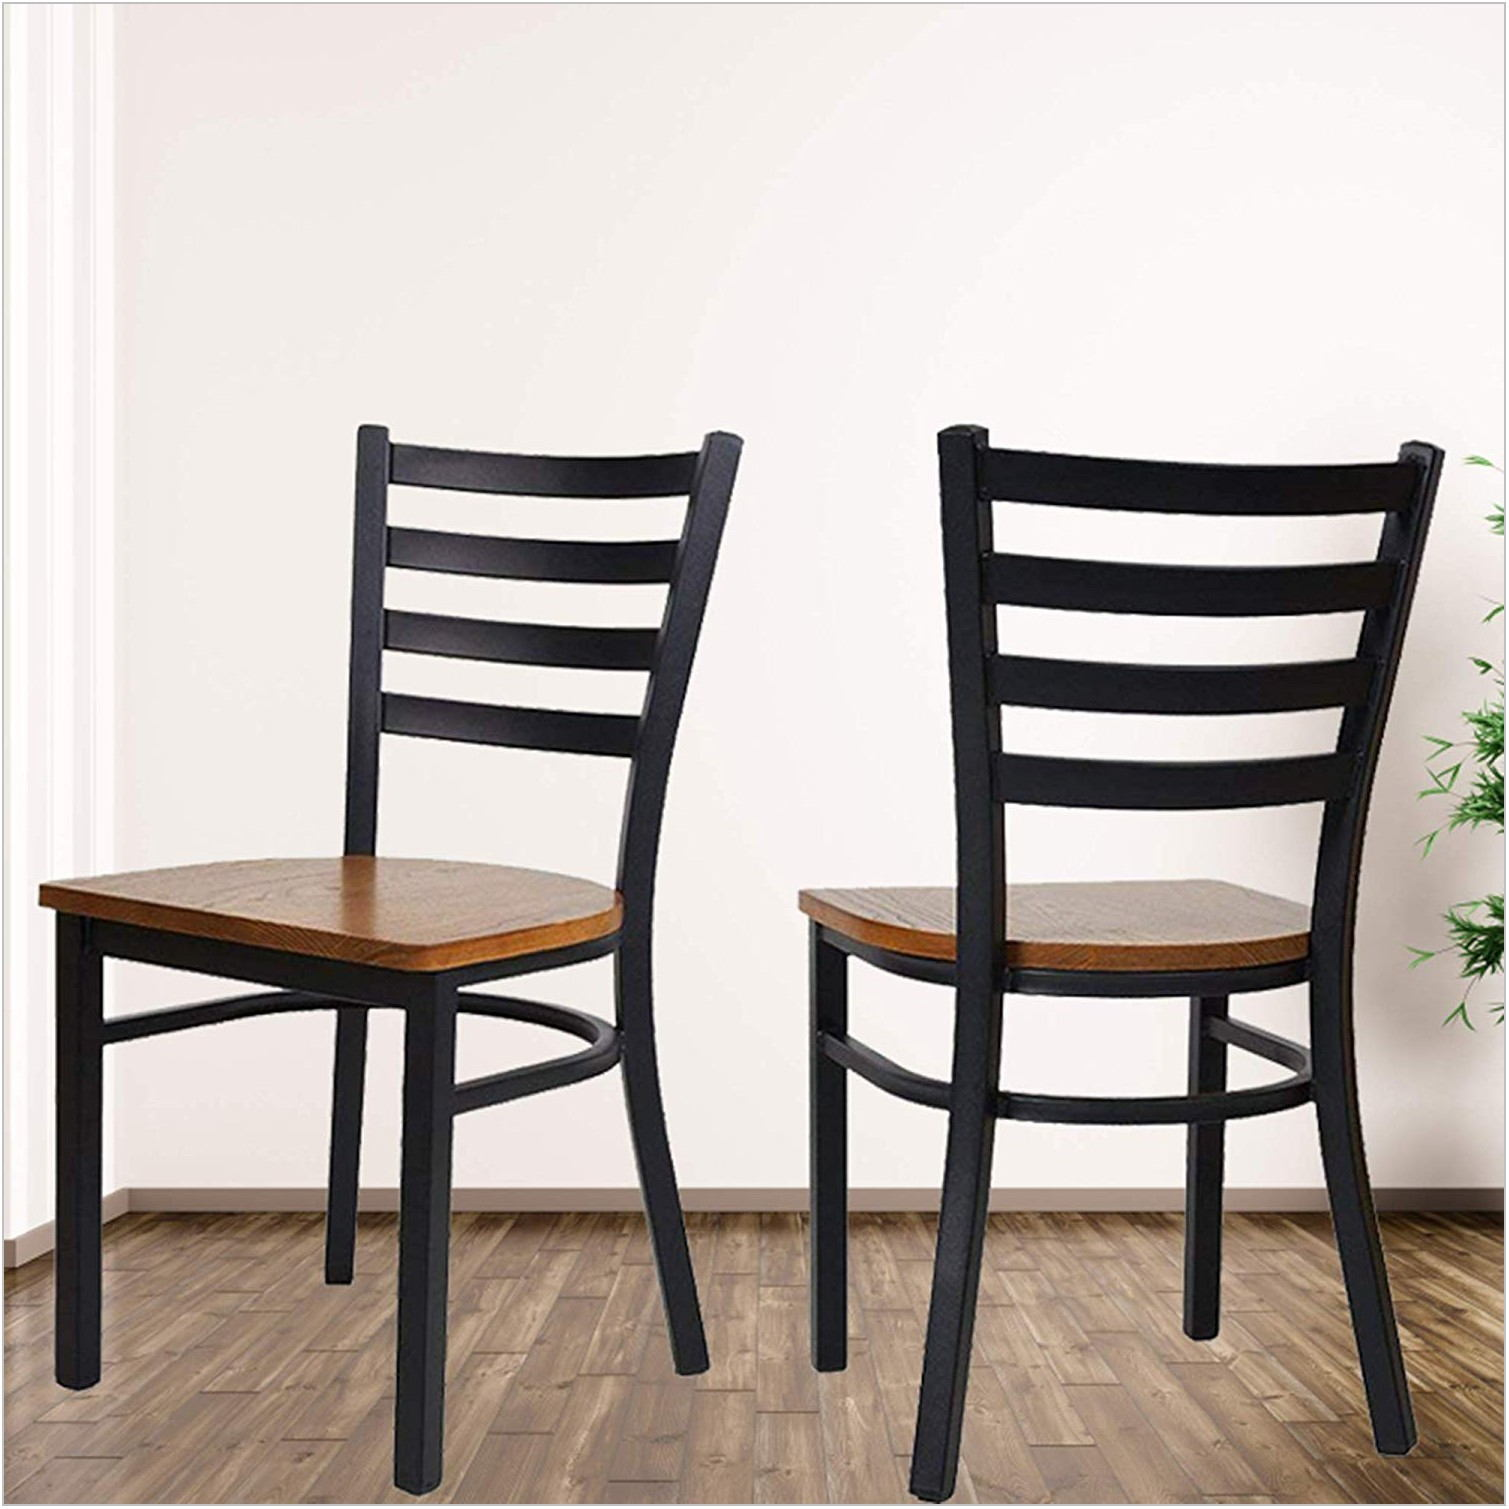 Fully Assembled Dining Room Chairs